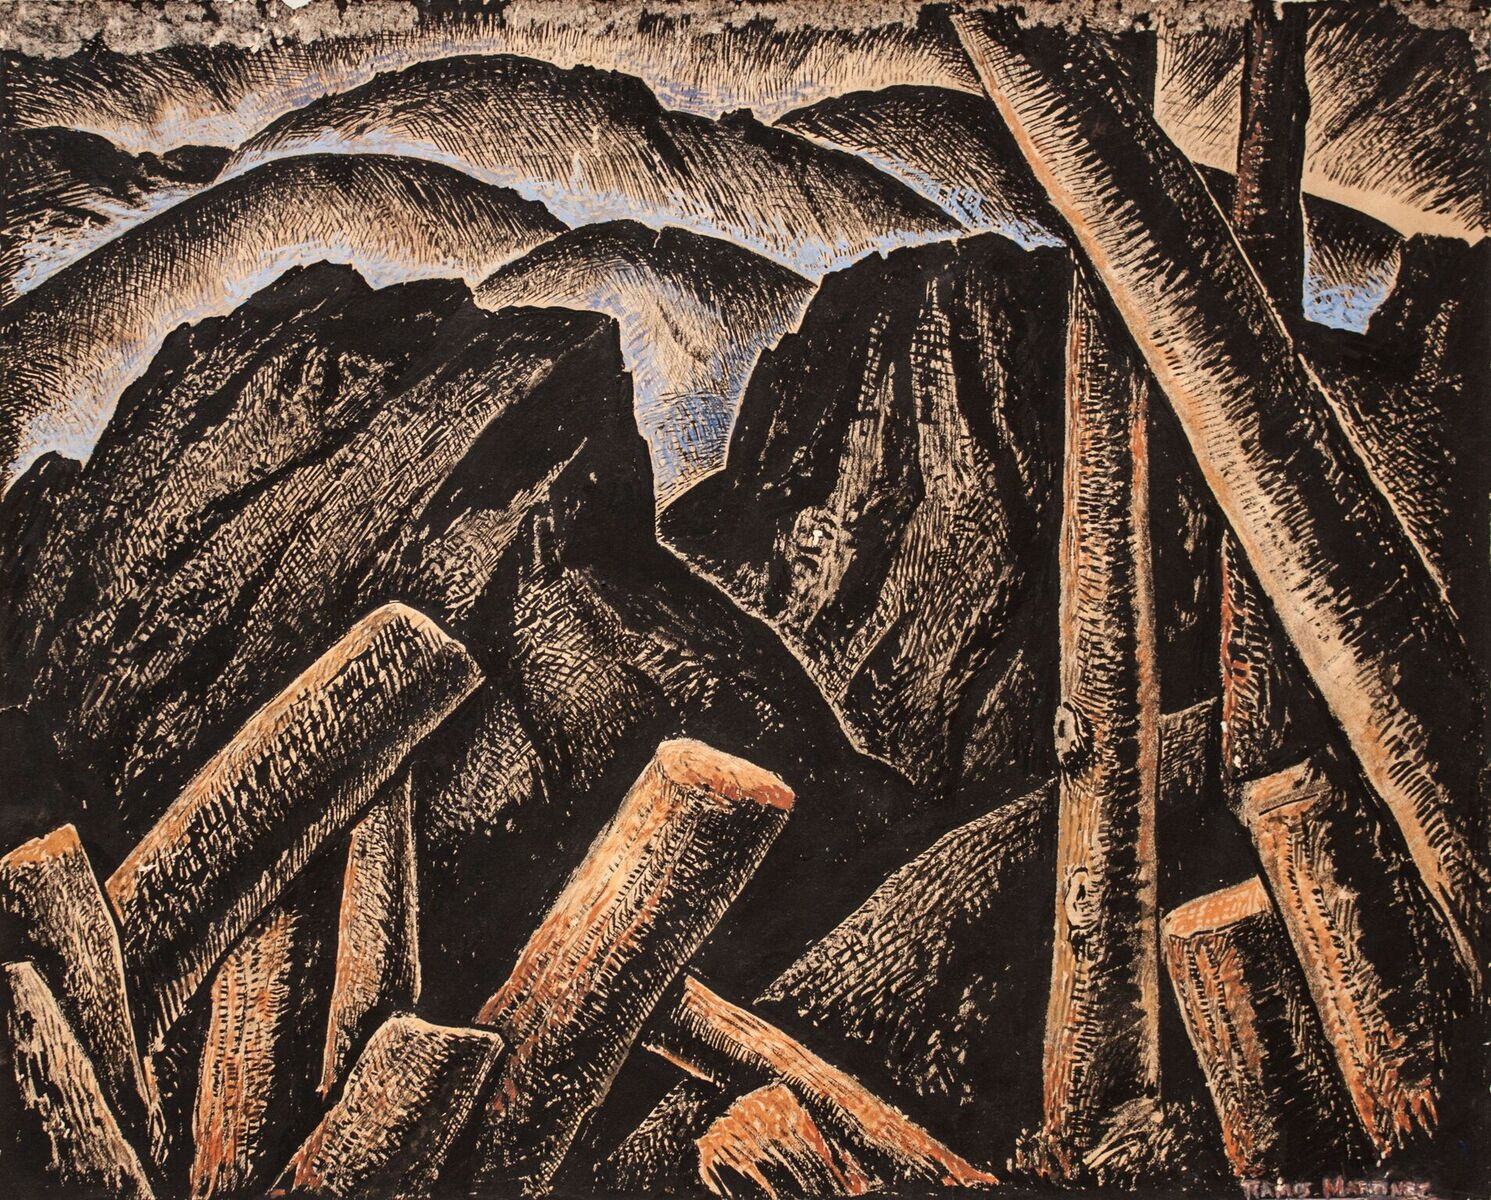 Alfredo Ramos Martinez (1871-1946)   After the Storm , c. 1934  tempera on paper 11 1/2 x 14 5/8 inches; 29.2 x 37.1 centimeters